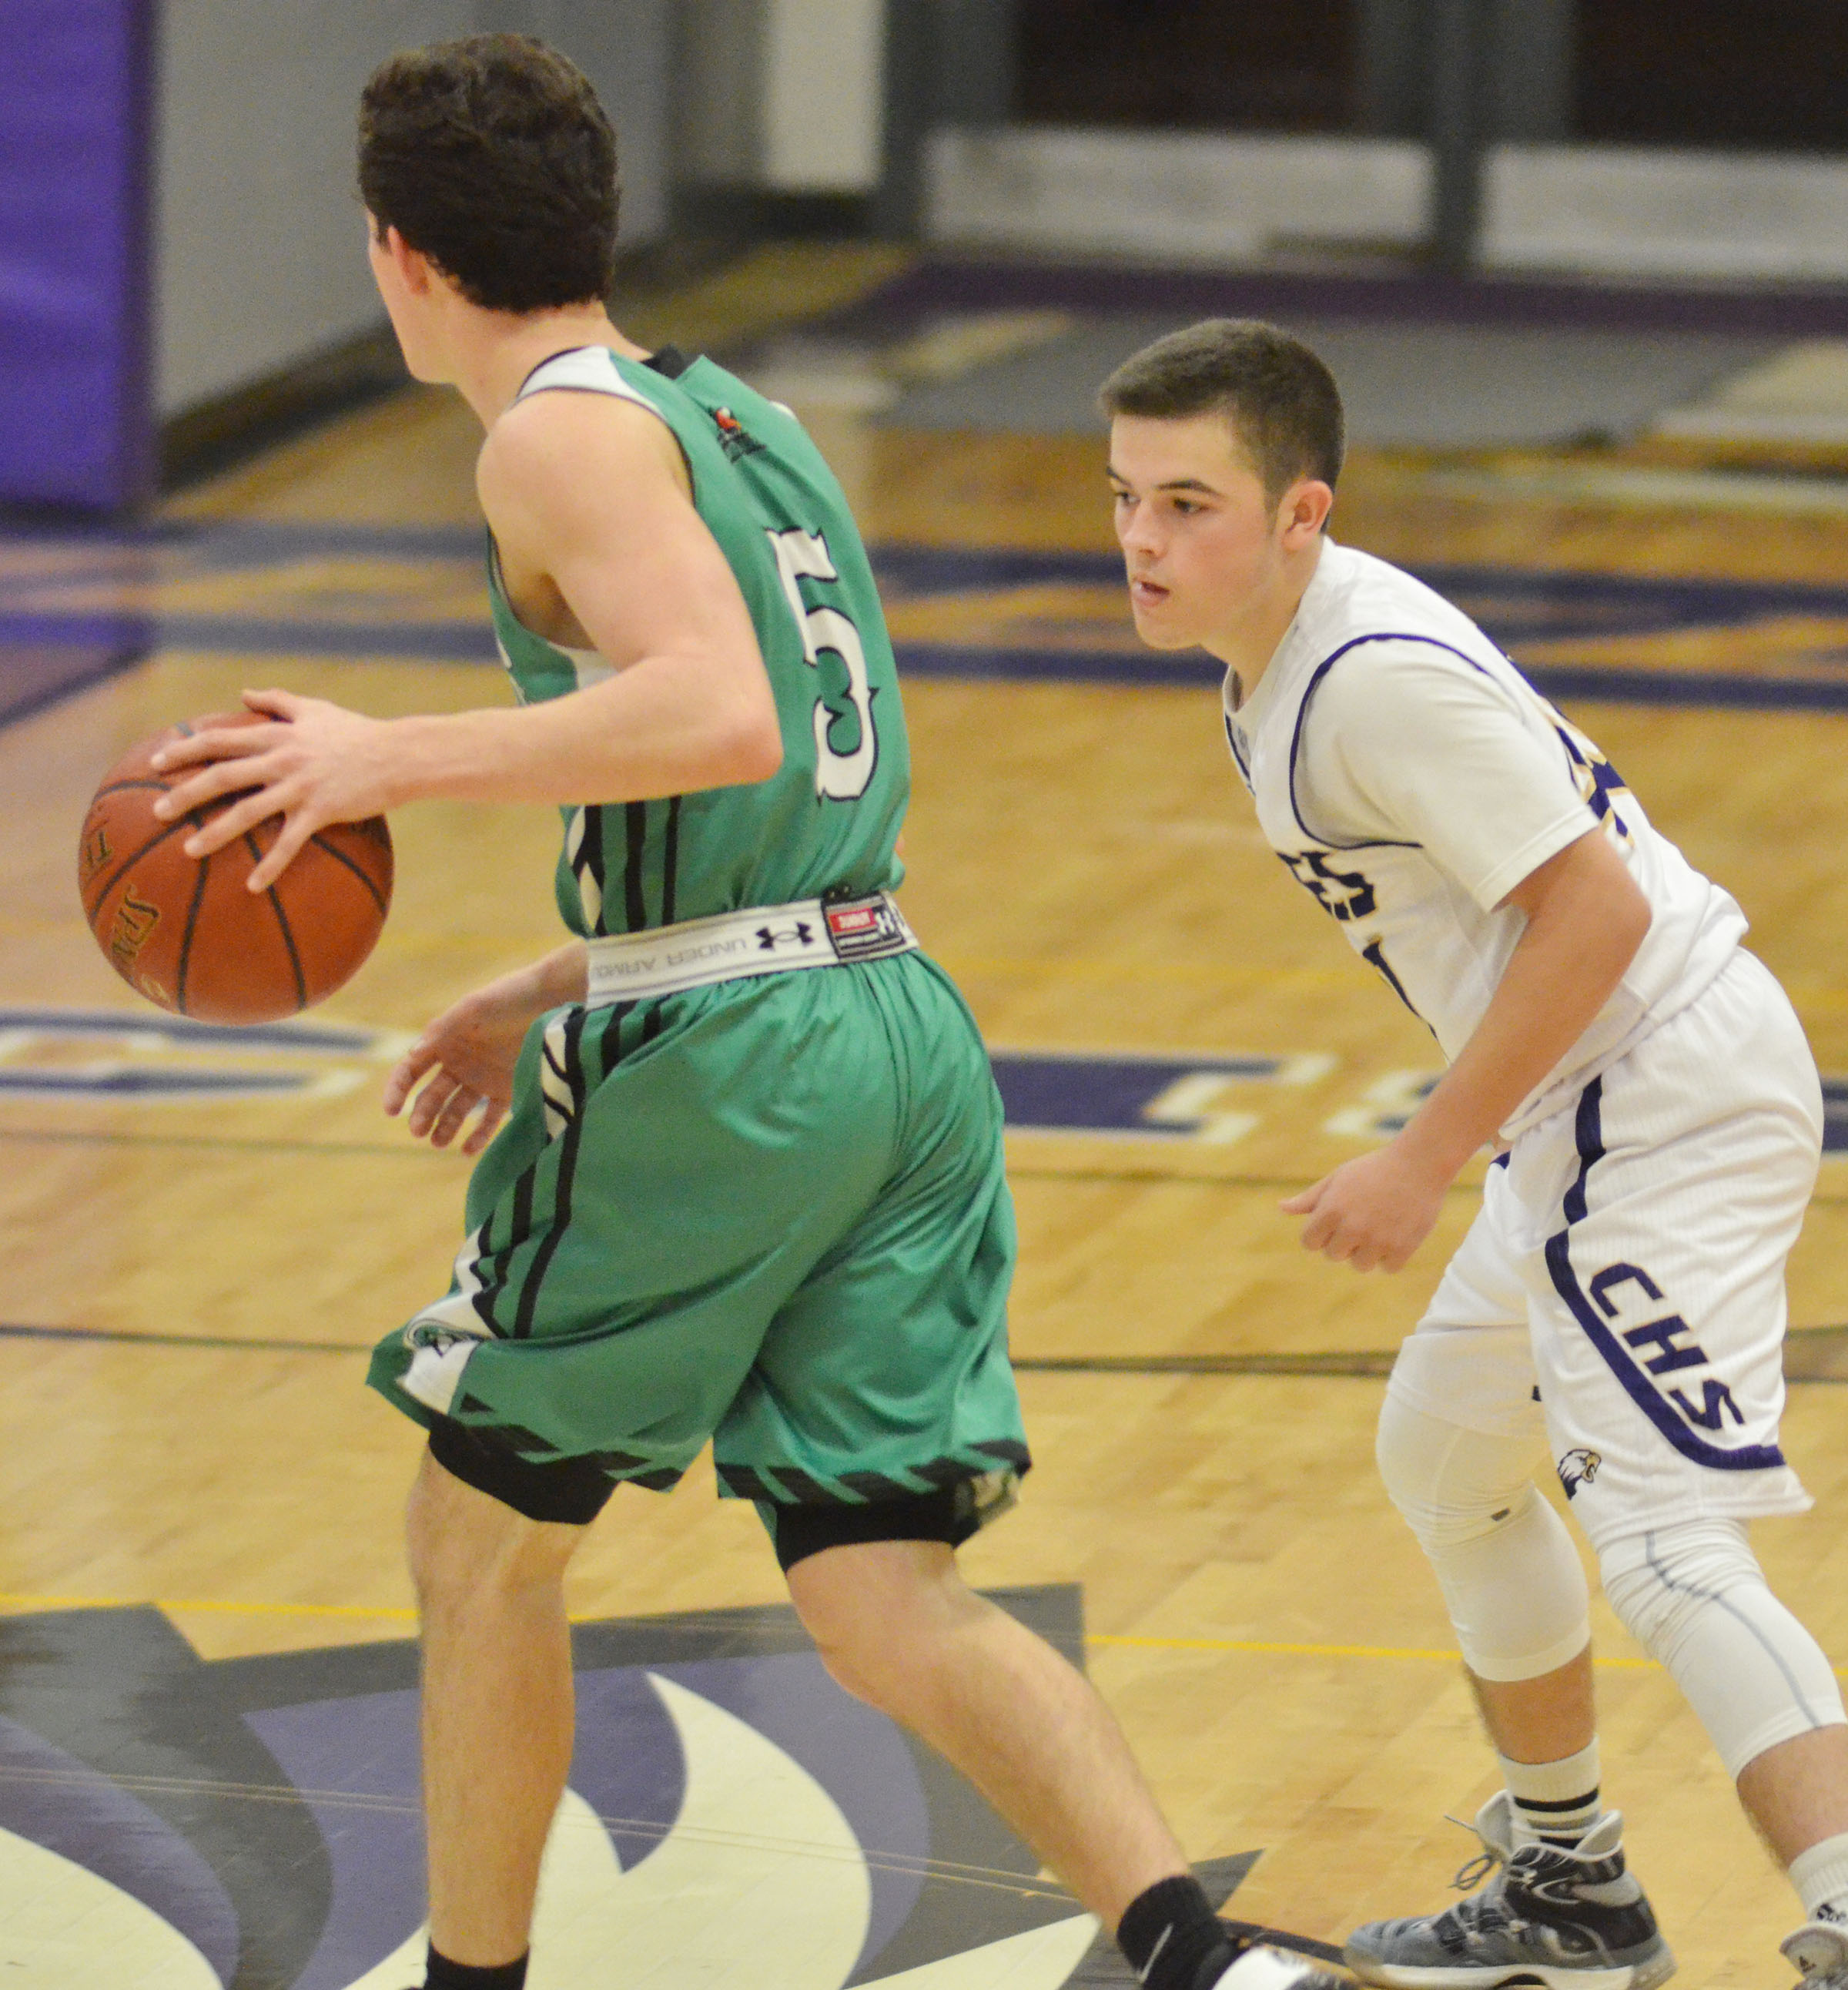 CHS sophomore Ryan Kearney watches the ball.